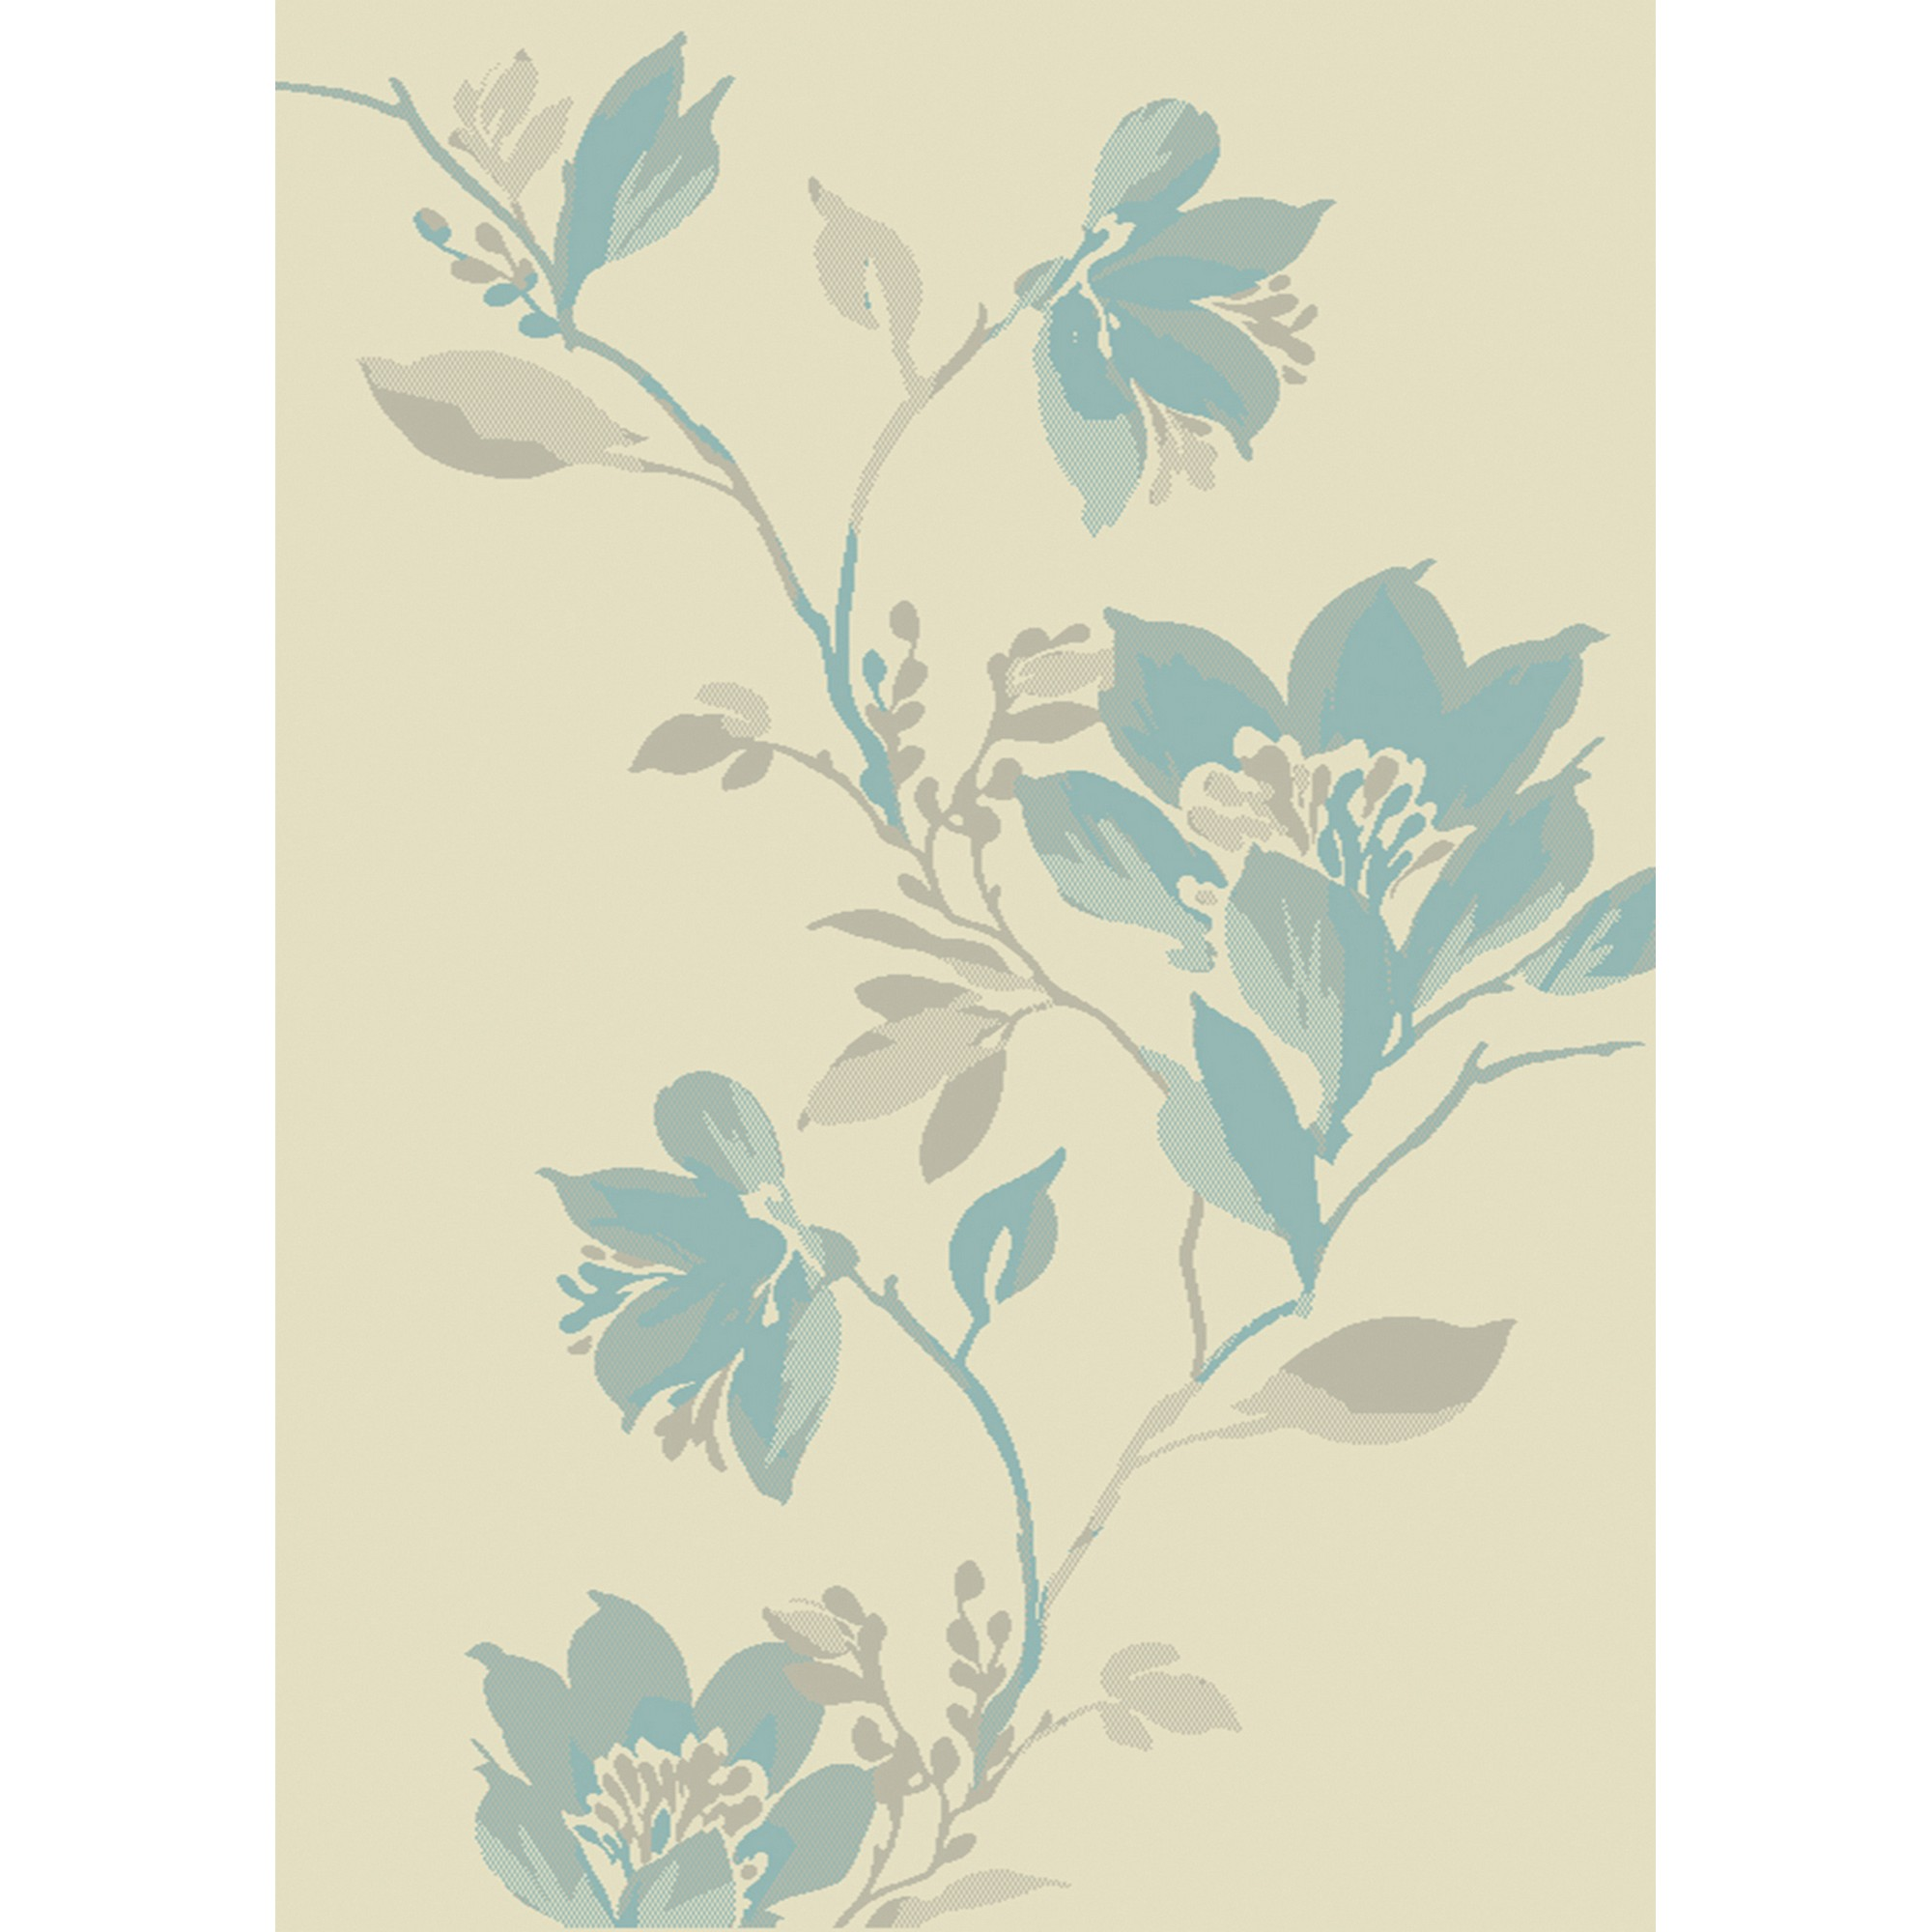 Focus Floral Rugs FC11 in Blue